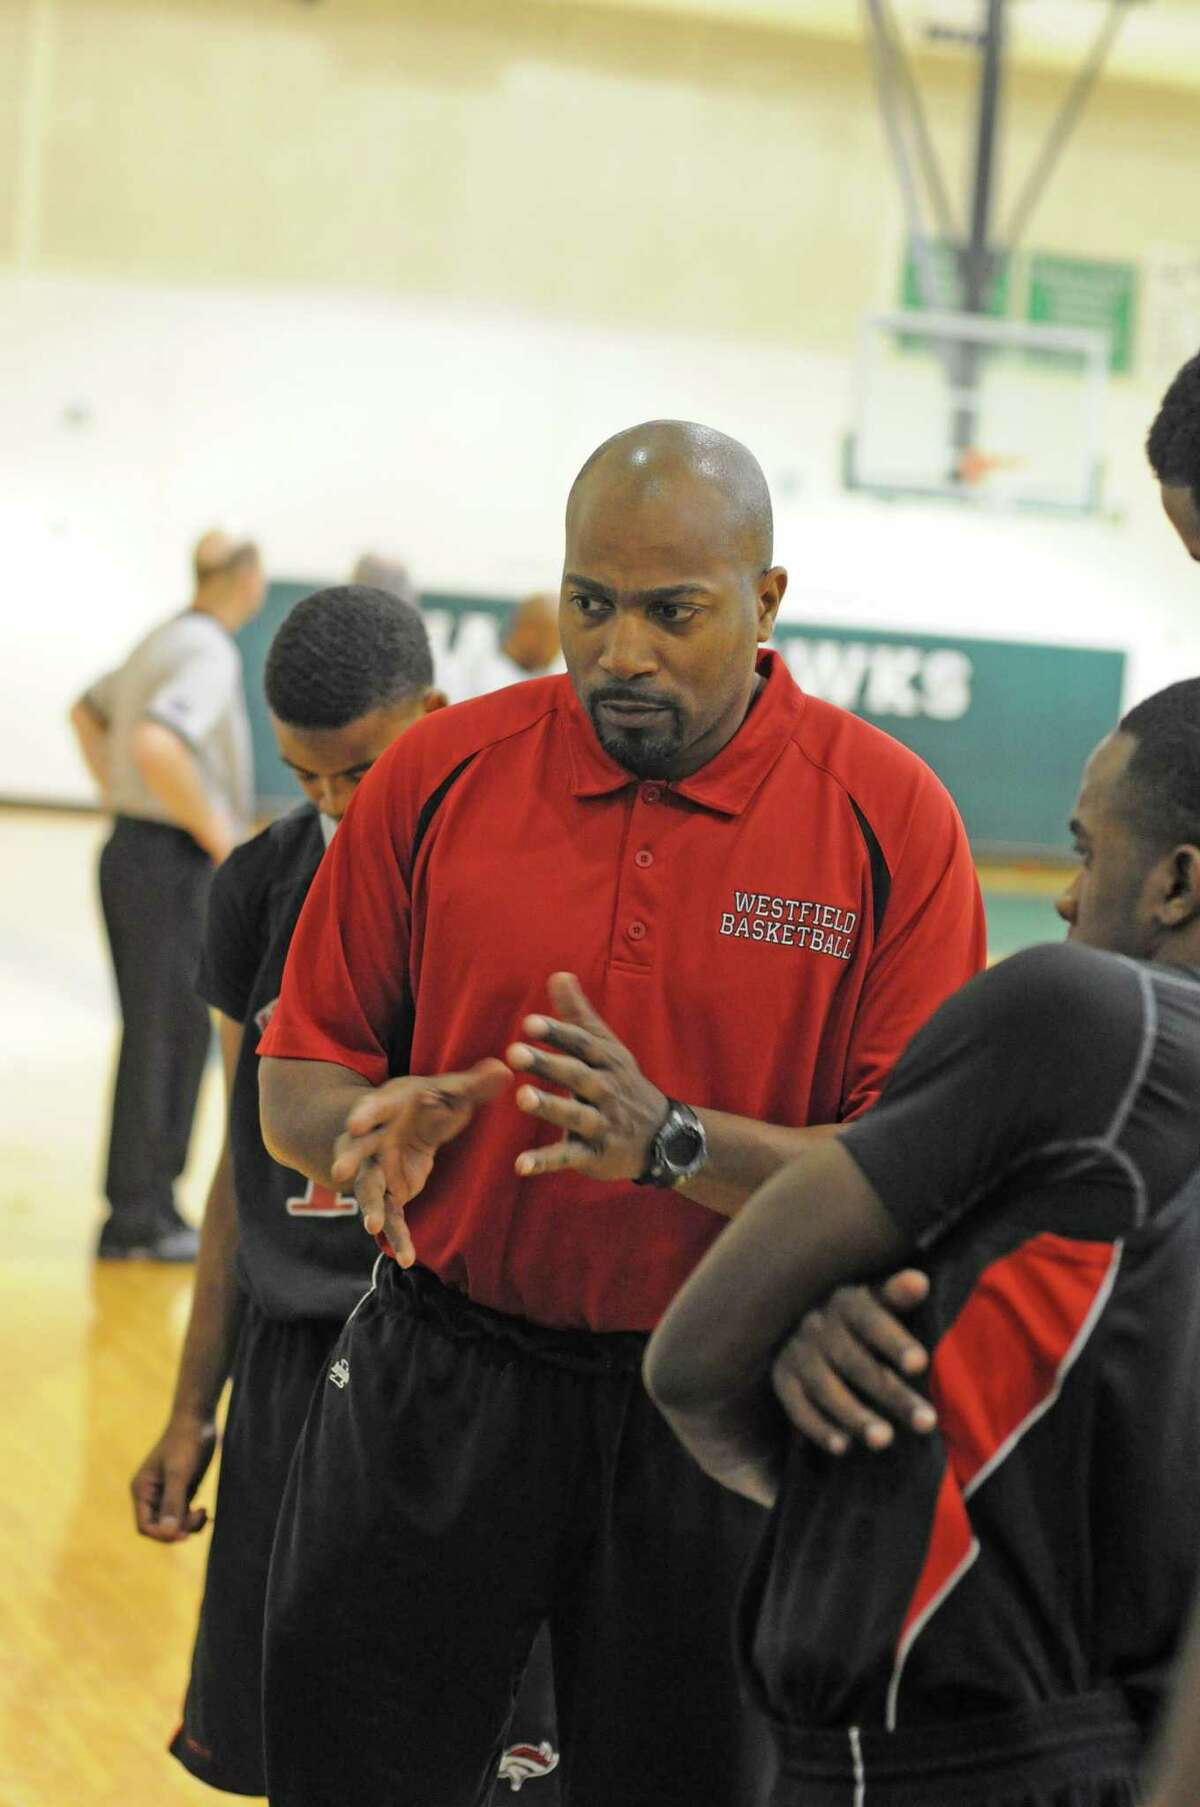 Westfield boys basketball coach Van Price. Westfield defeated Sharpstown 47-35 during the Alvin Lion's Club Classic on 12-28-10 at Harby Middle School in Alvin.